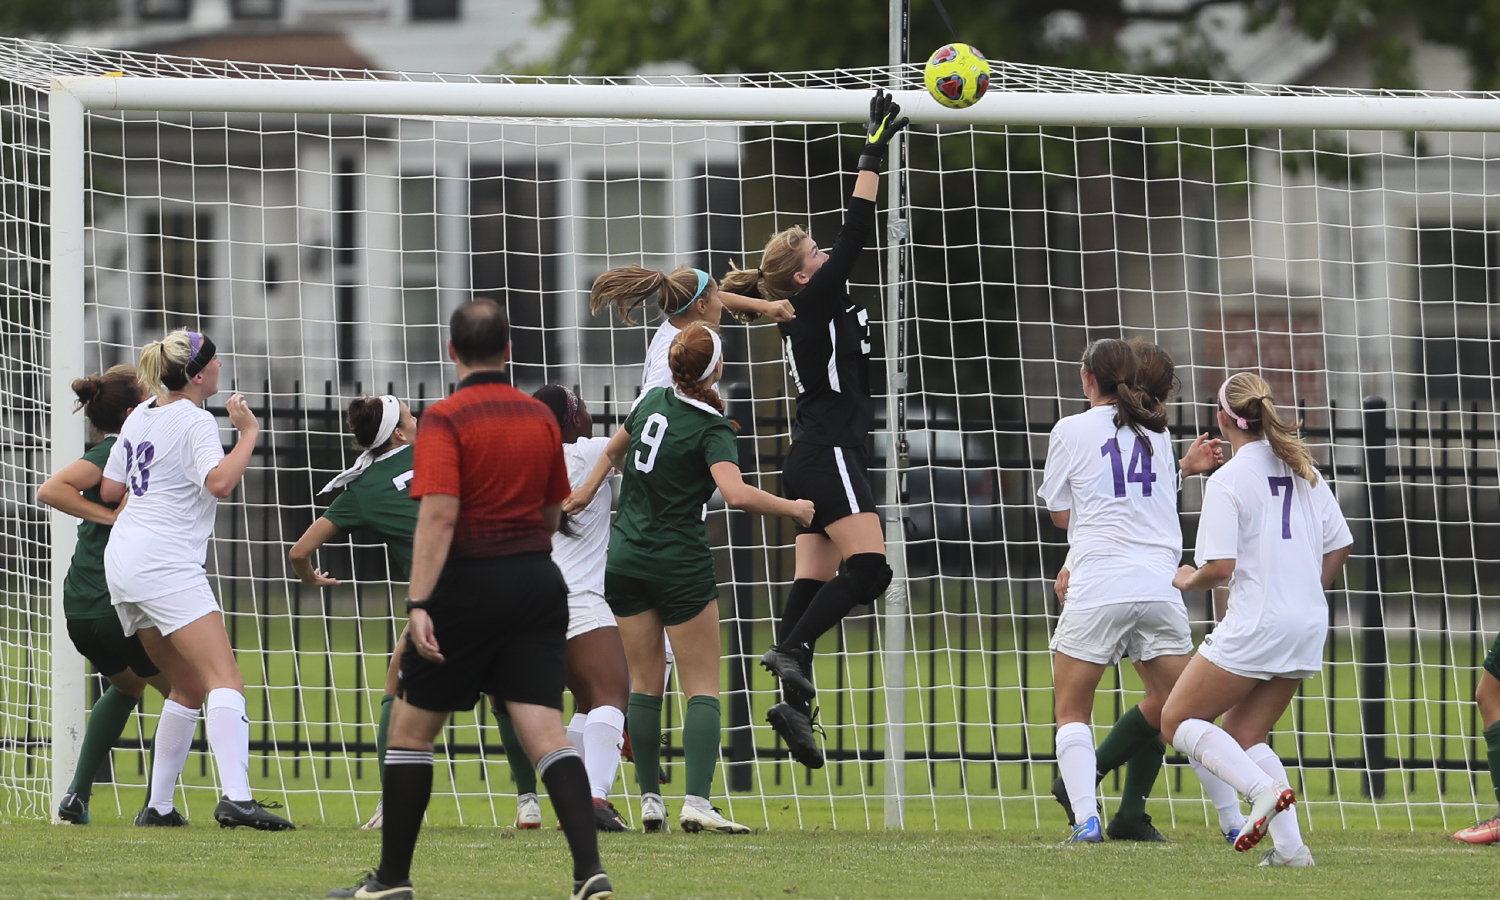 Amanda Kesler '22 reaches to make a save during William Smith's 3-0 victory over Stevenson University.